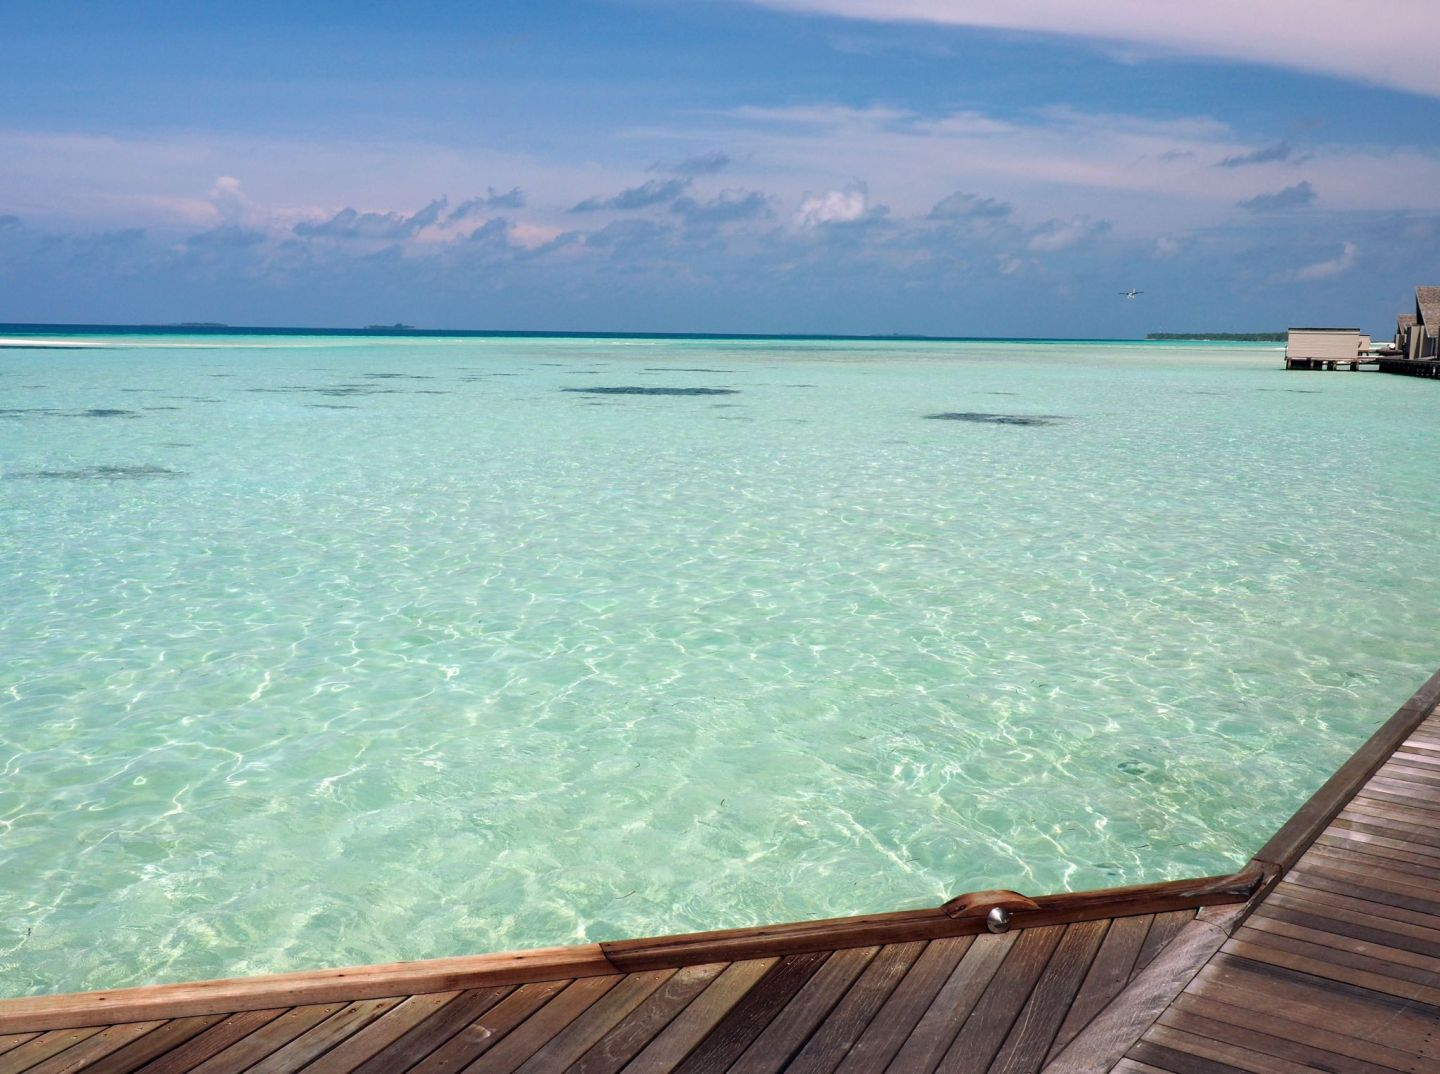 Stunning water LUX Maldives